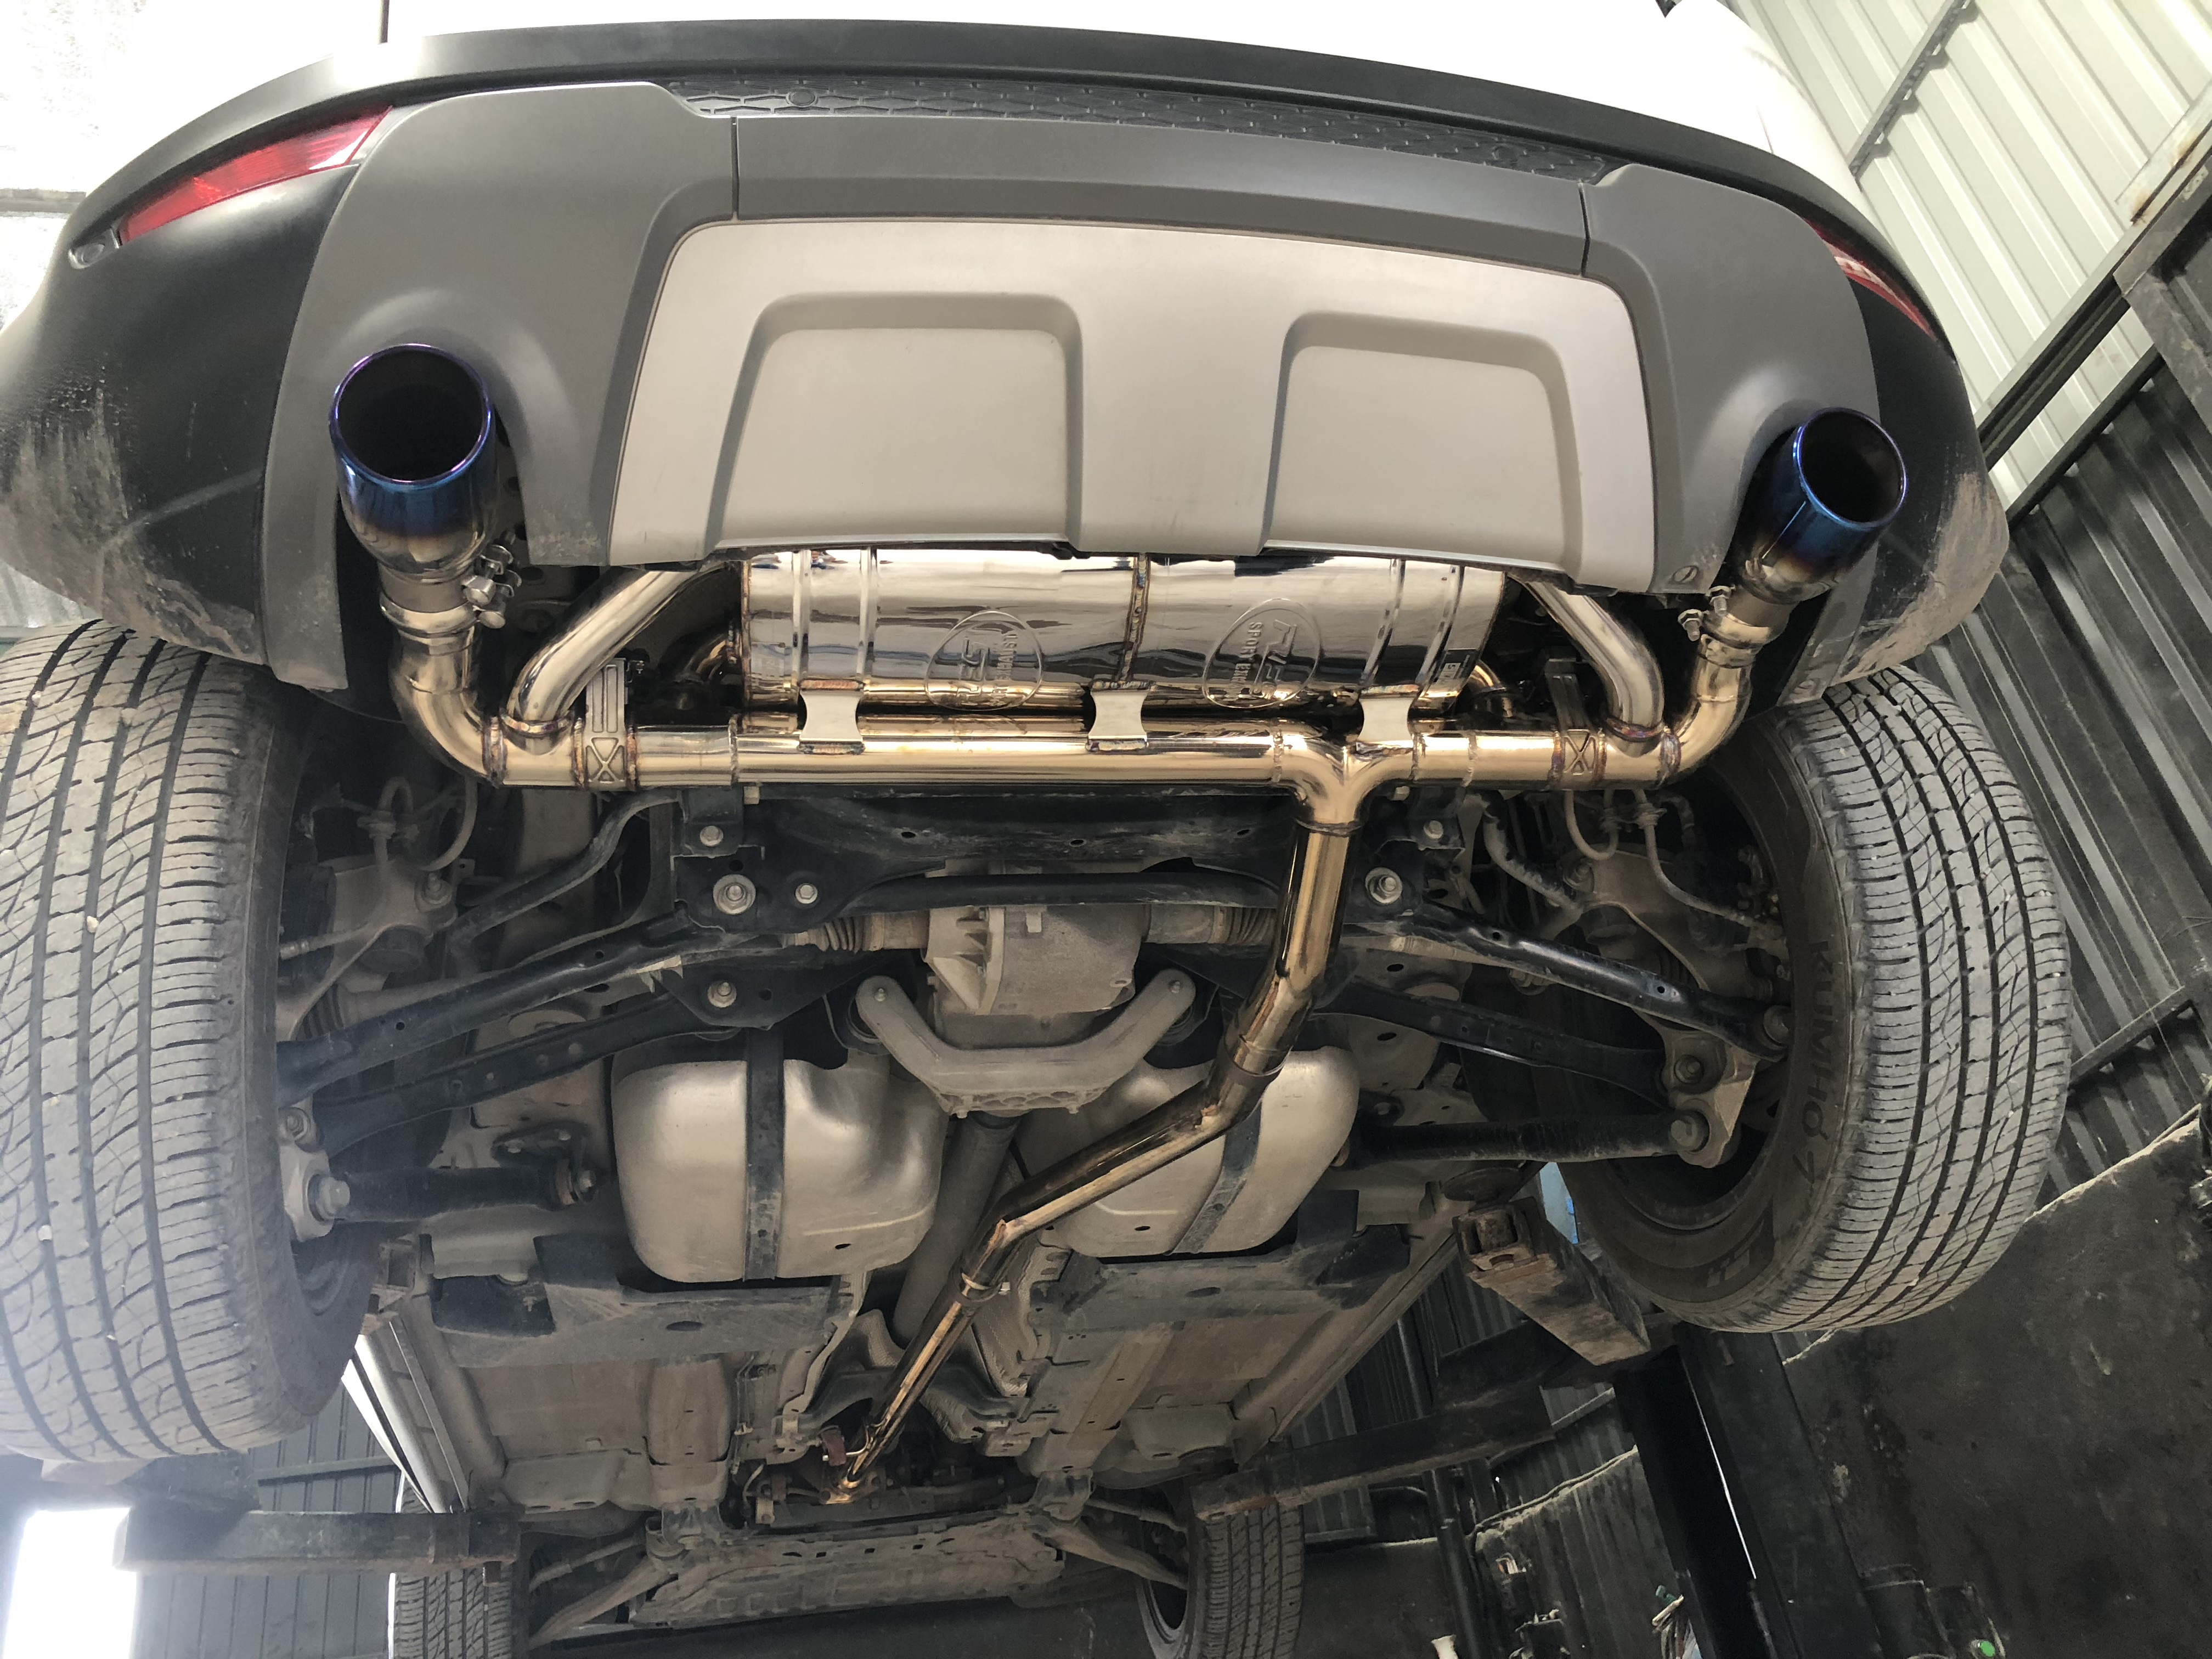 RANGE ROVER EVOQUE / FULL RES EXHAUST